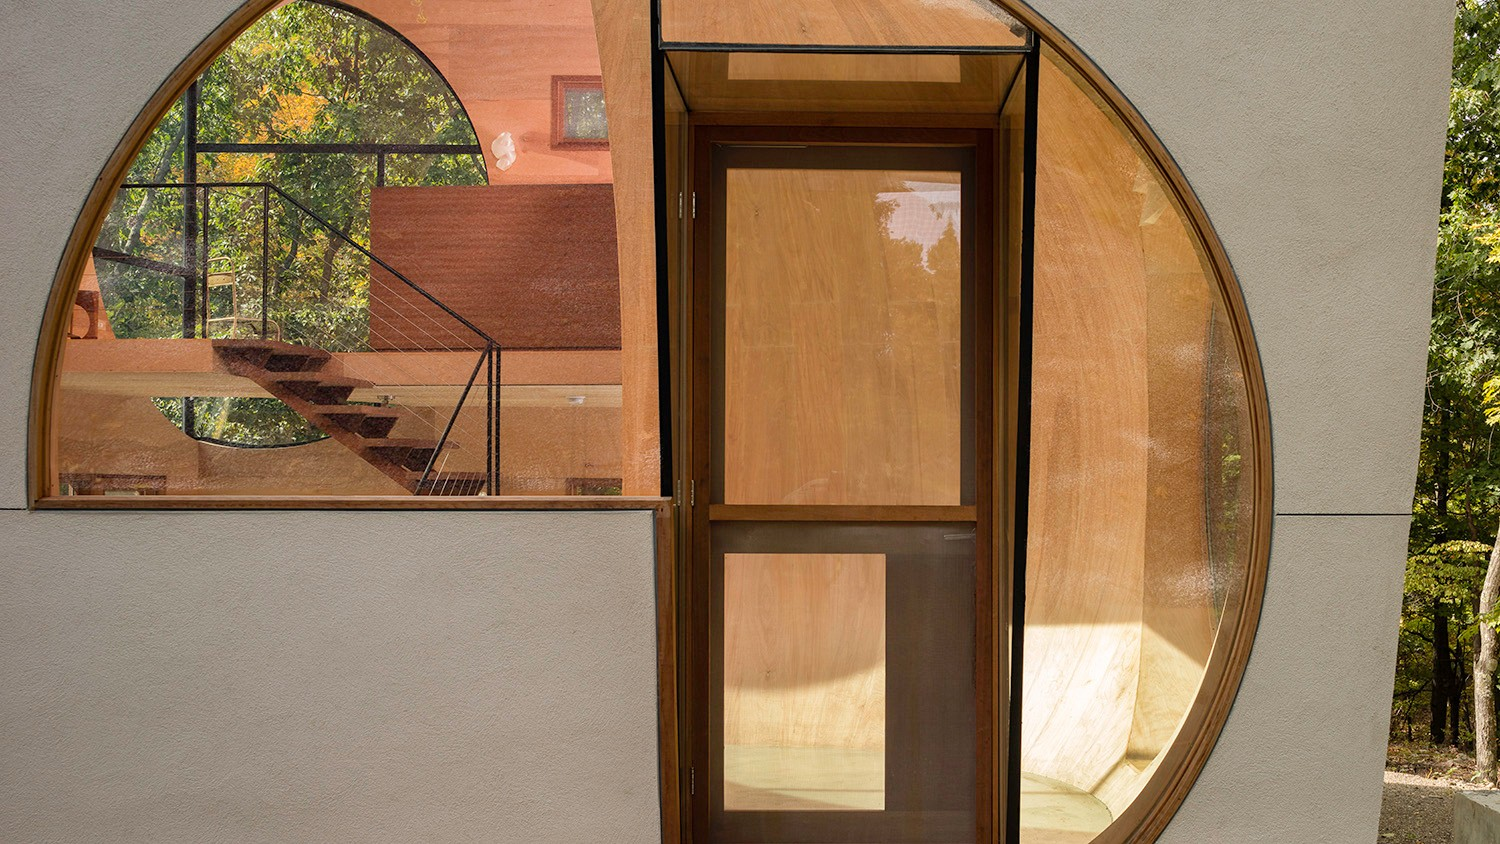 Ex of in house steven holl architects for Home holl